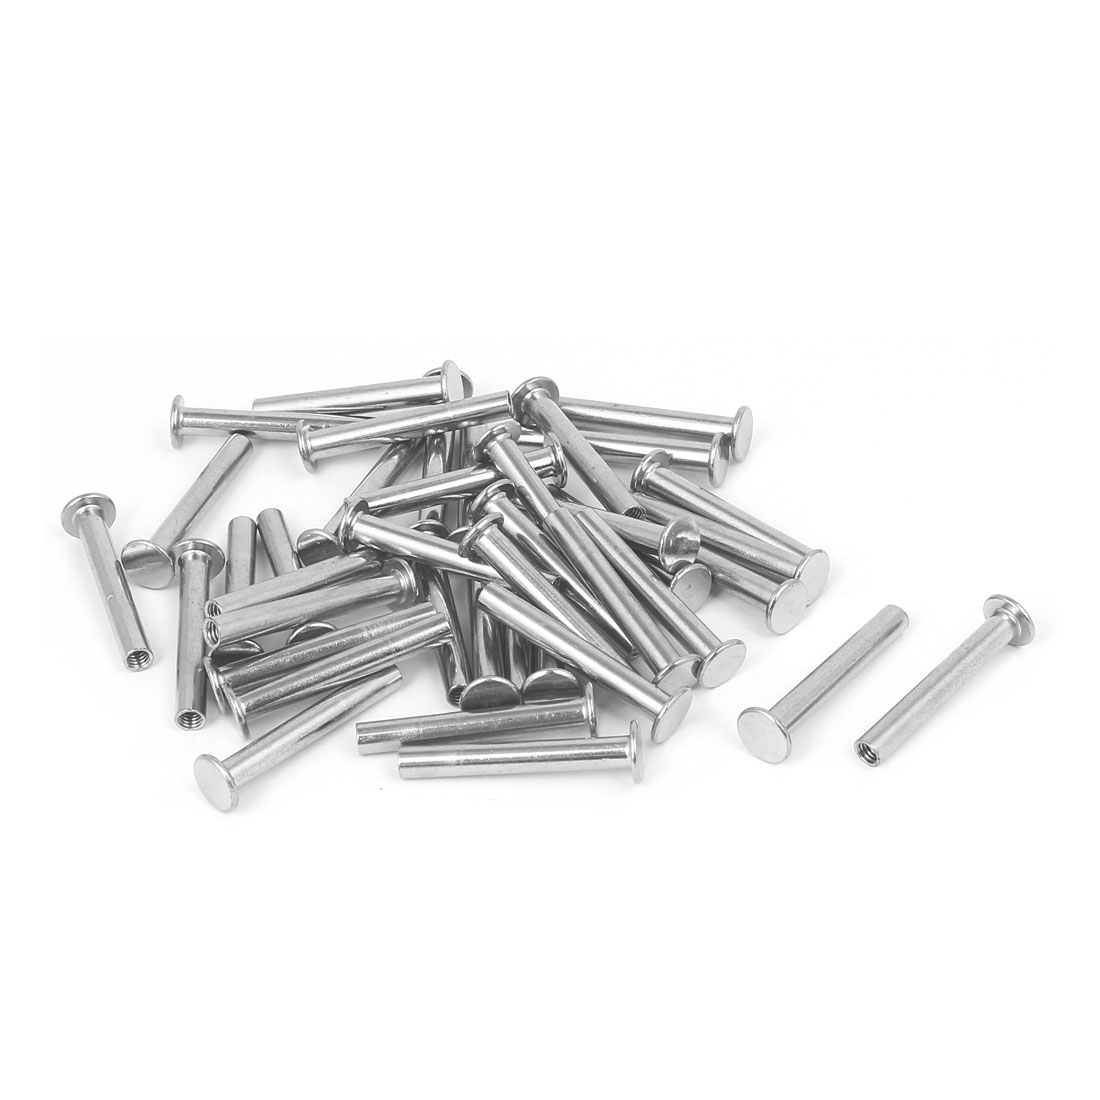 Photo Album Metal Nickel Plated Binding Screw Post Barrel Nut 5mmx35mm 40pcs